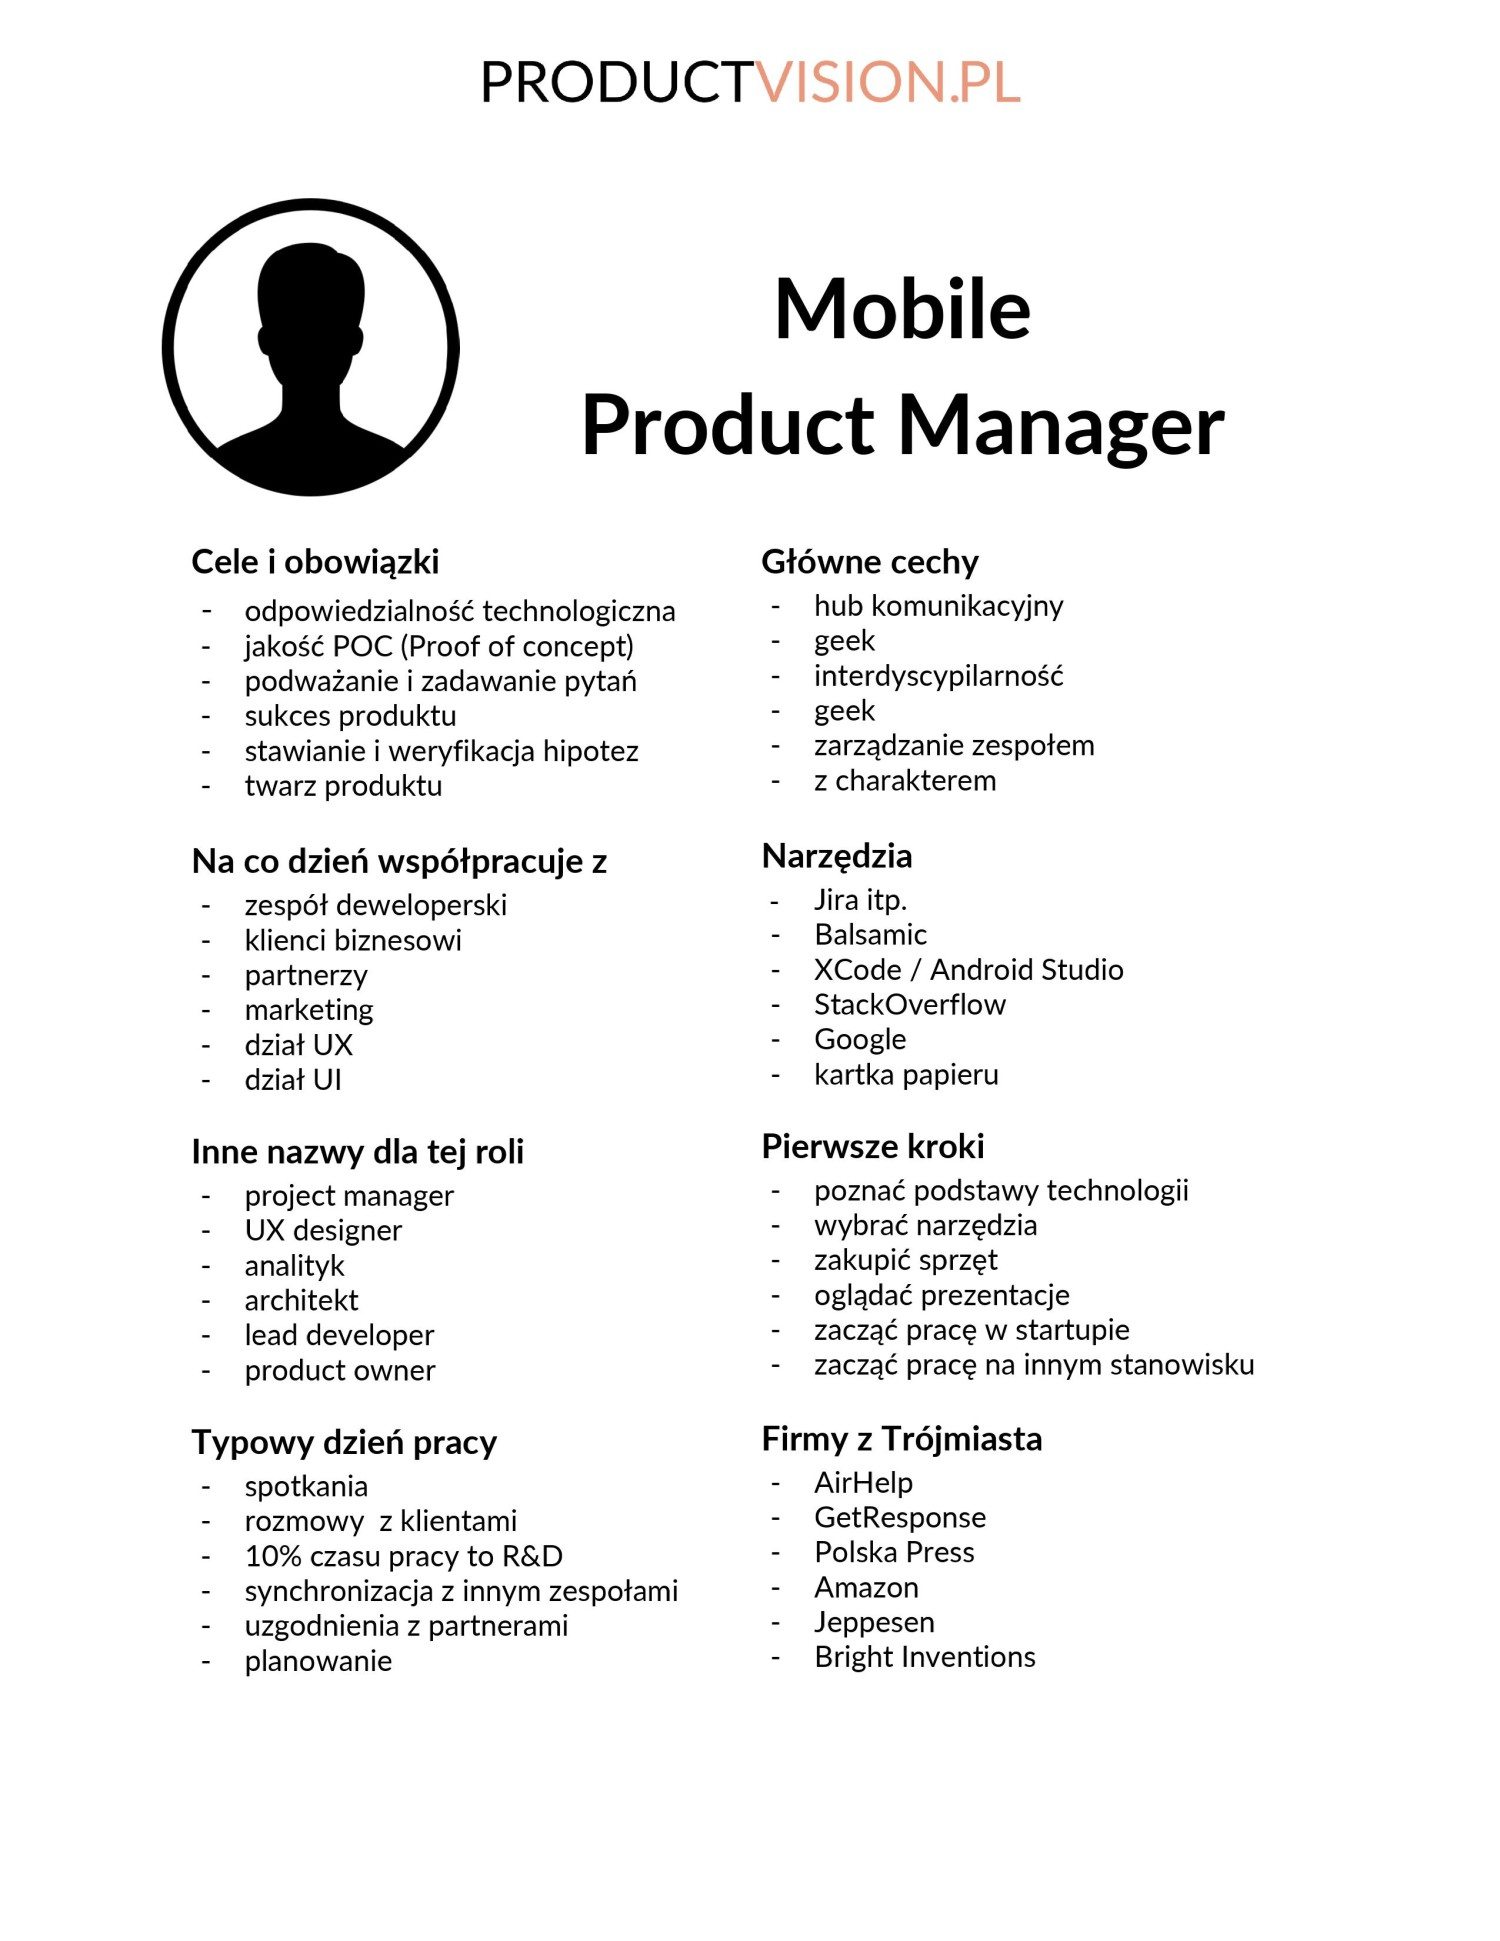 Persona - Mobile Product Manager